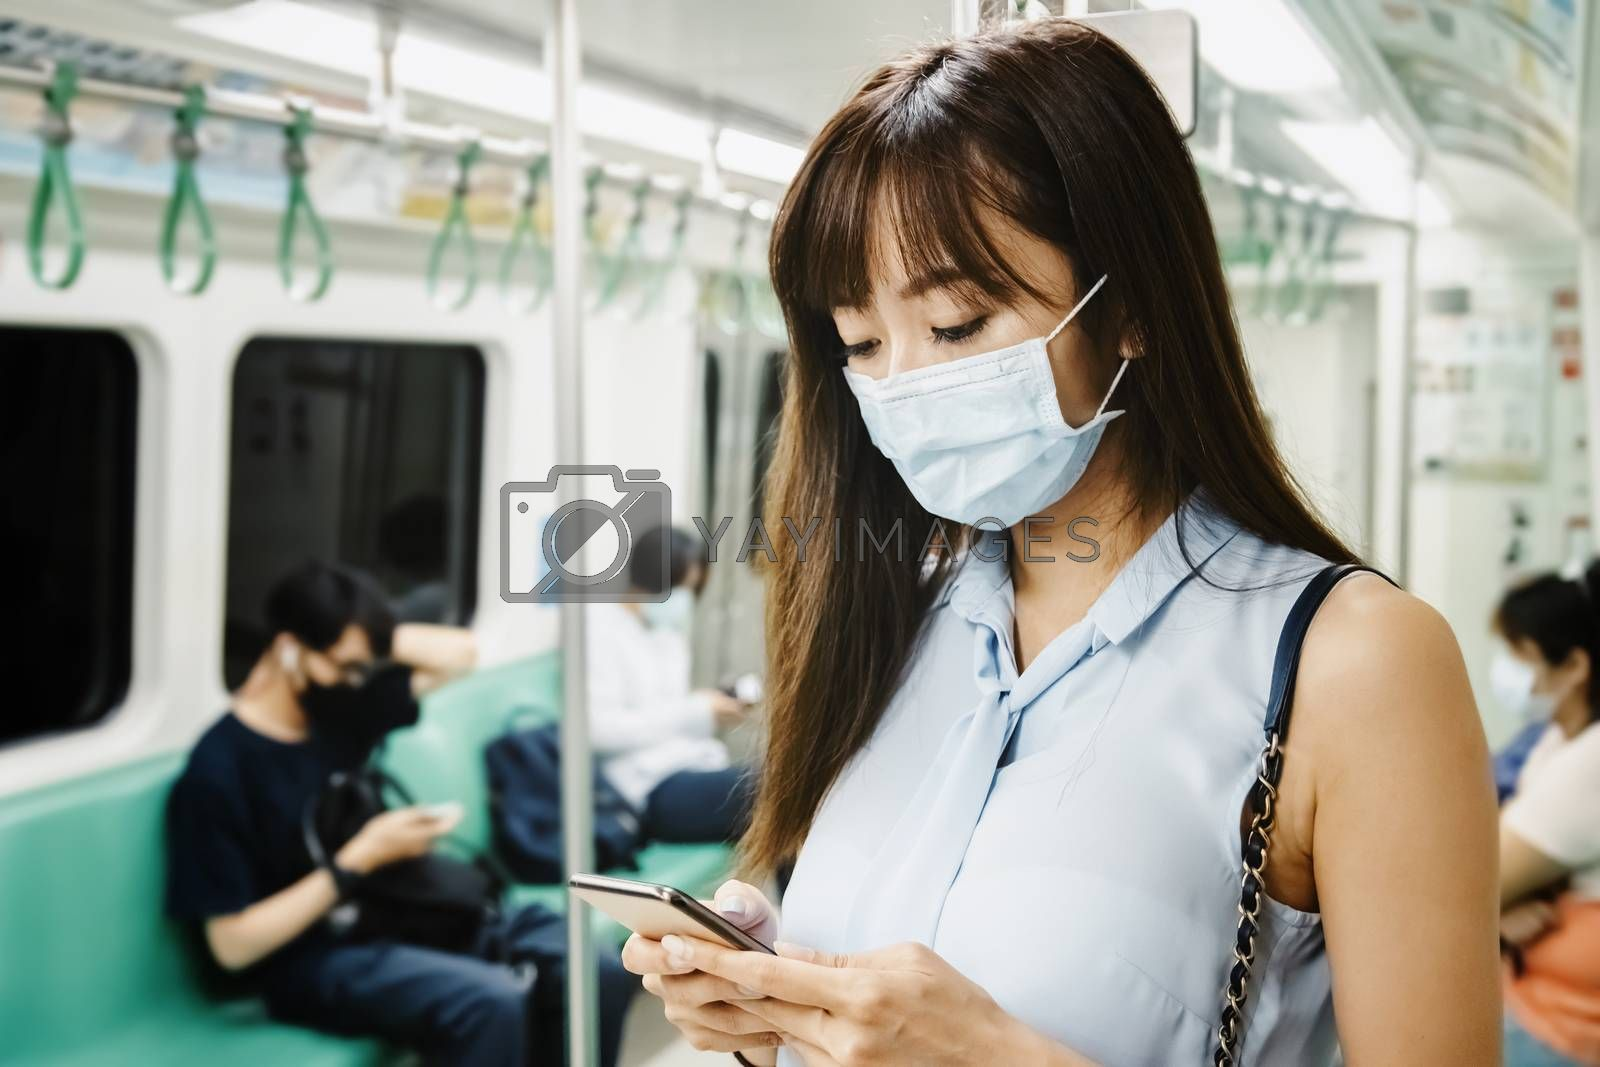 Young Asian woman passenger wearing surgical mask and using mobile phone in subway train